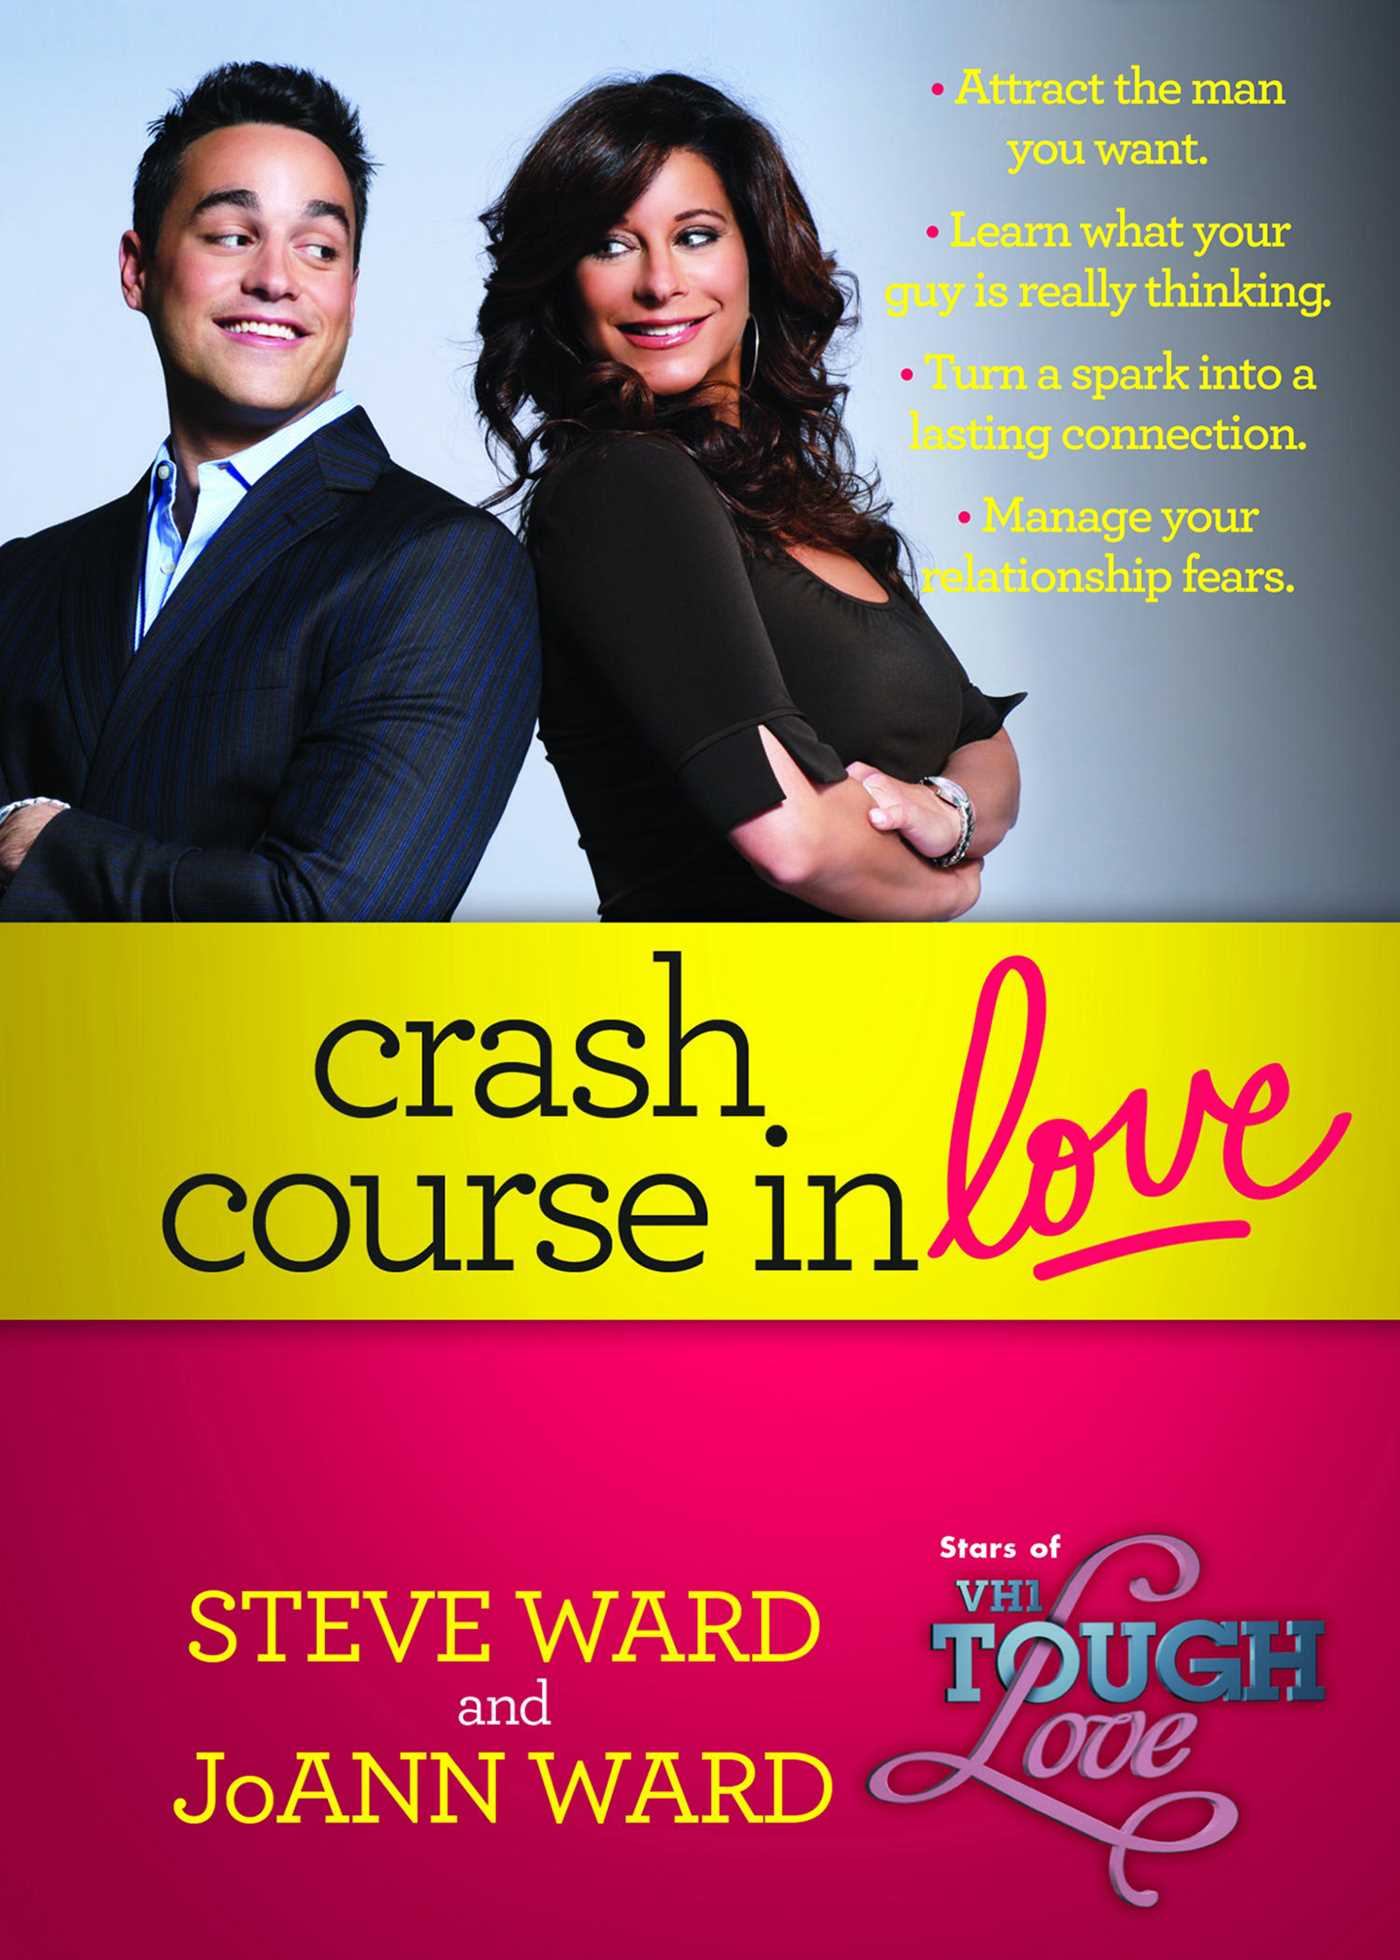 Crash course in love 9781439177358 hr